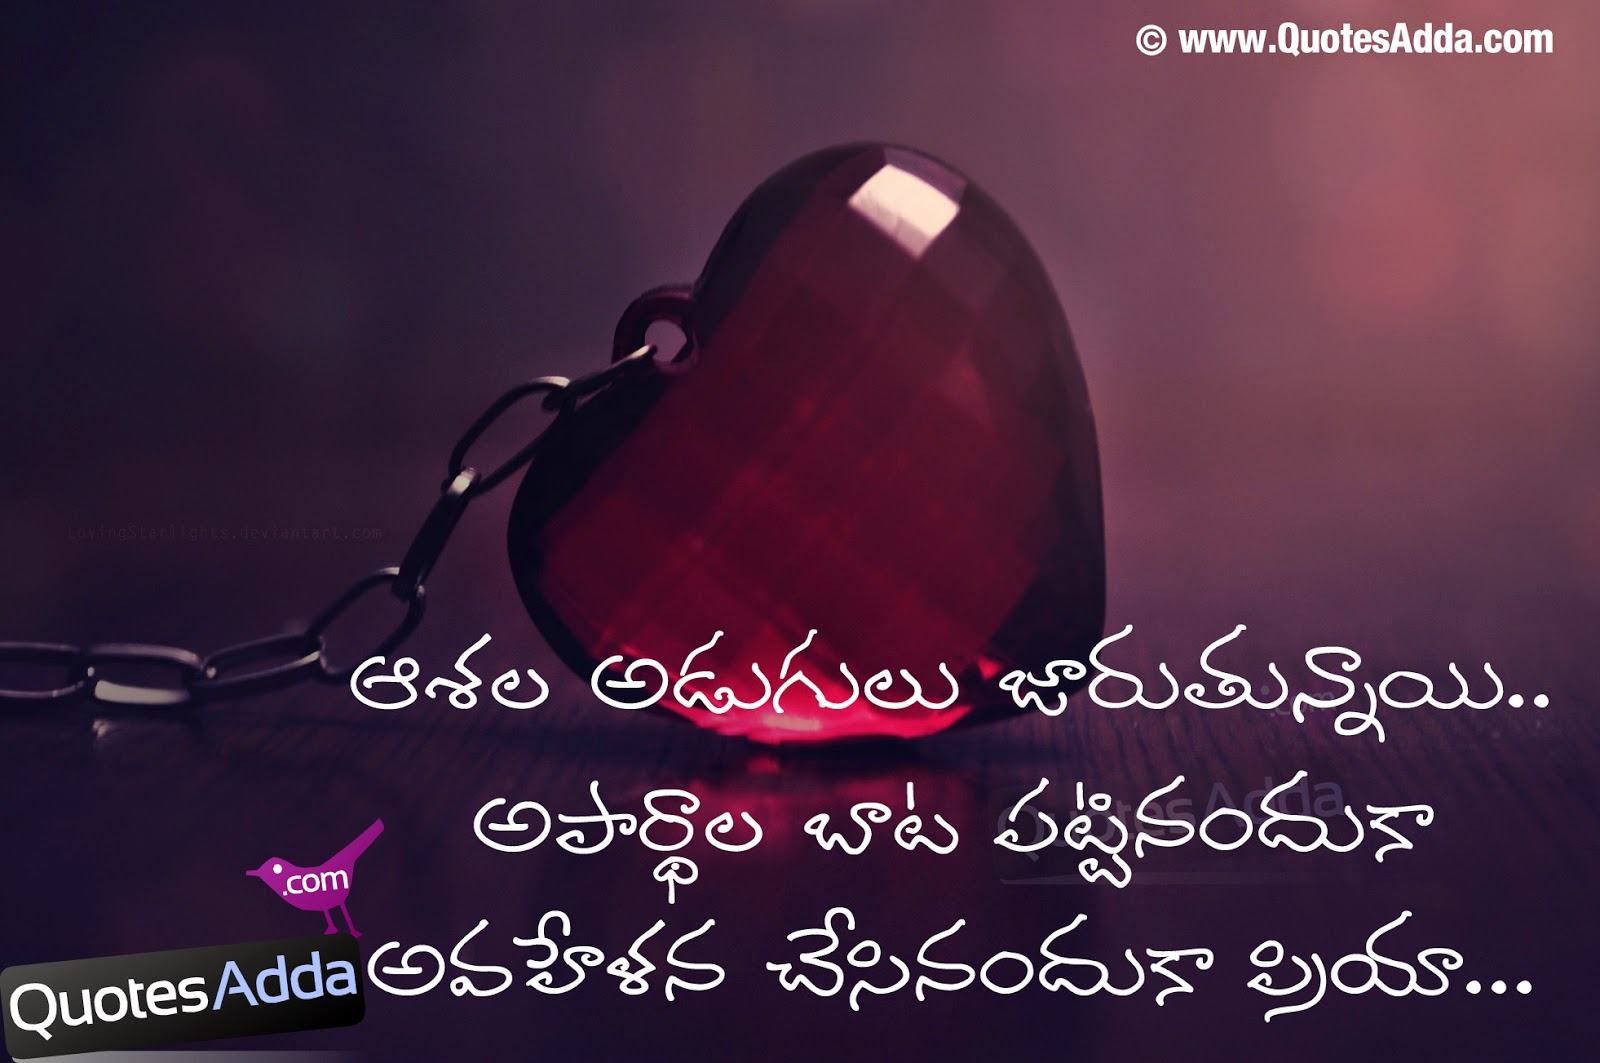 Sad Love Failure With Quotes Love failure alone sad quotes in telugu quotesadda